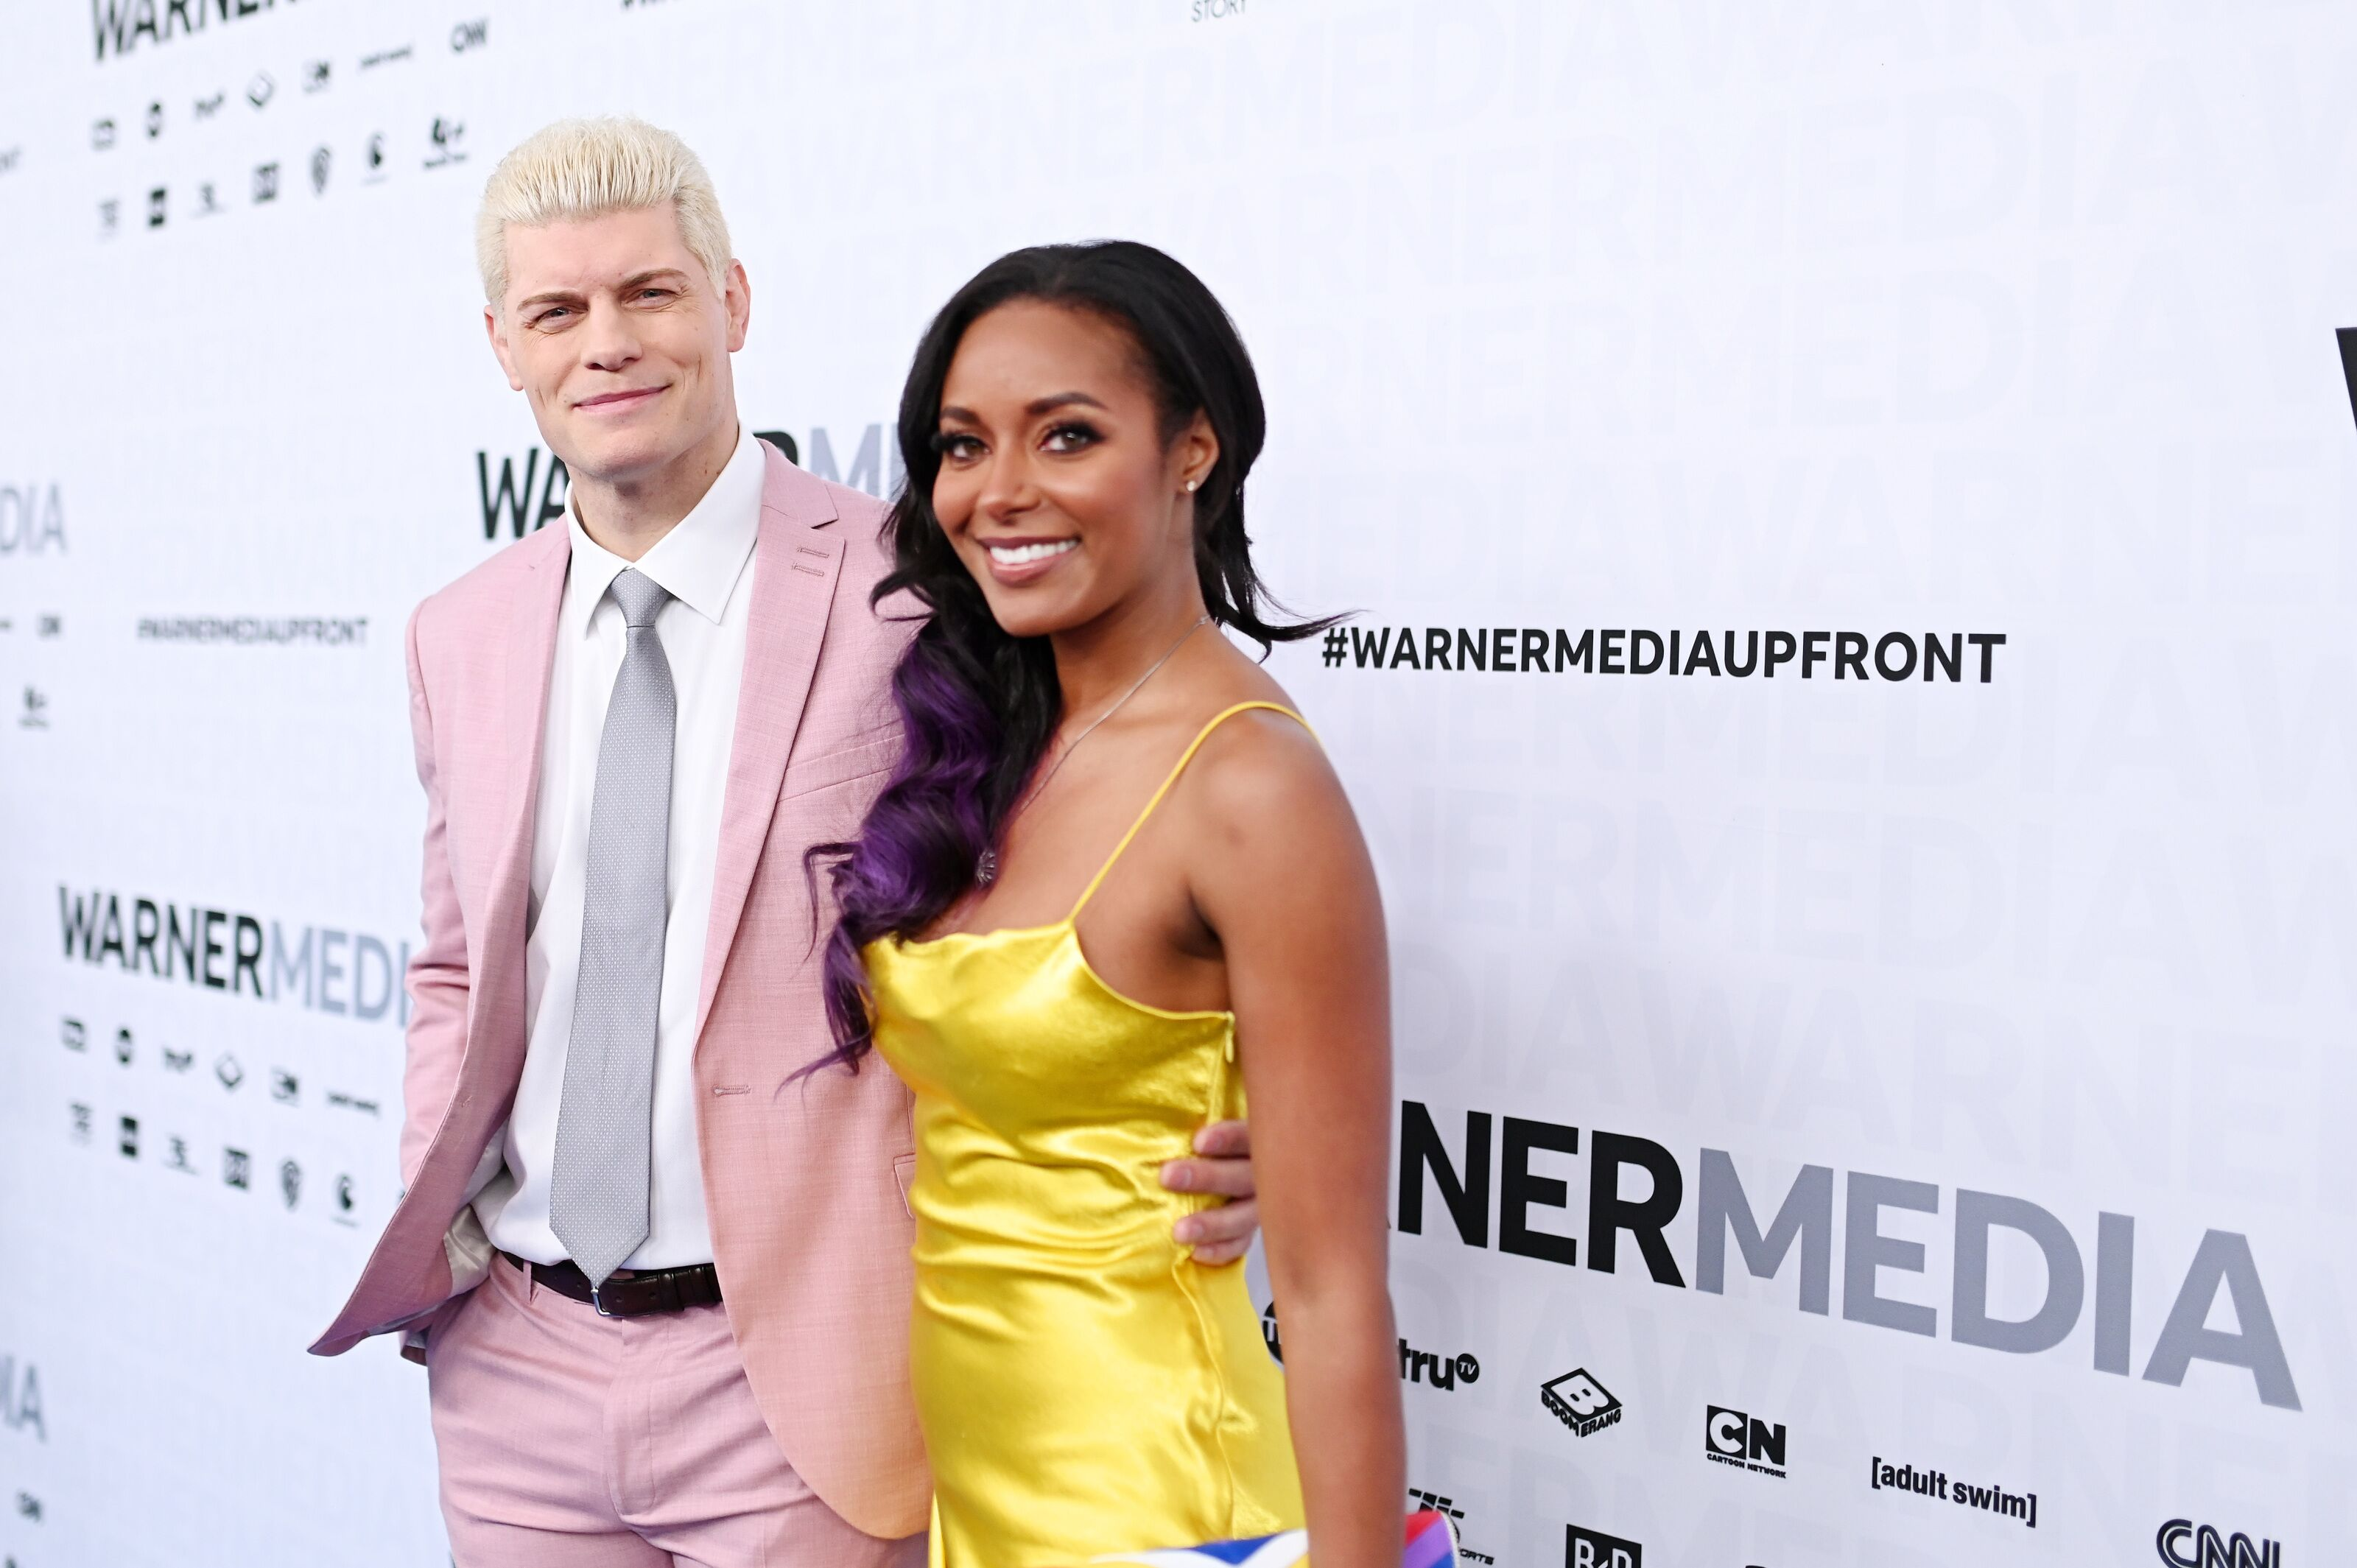 AEW: The importance of Cody's words on diversity